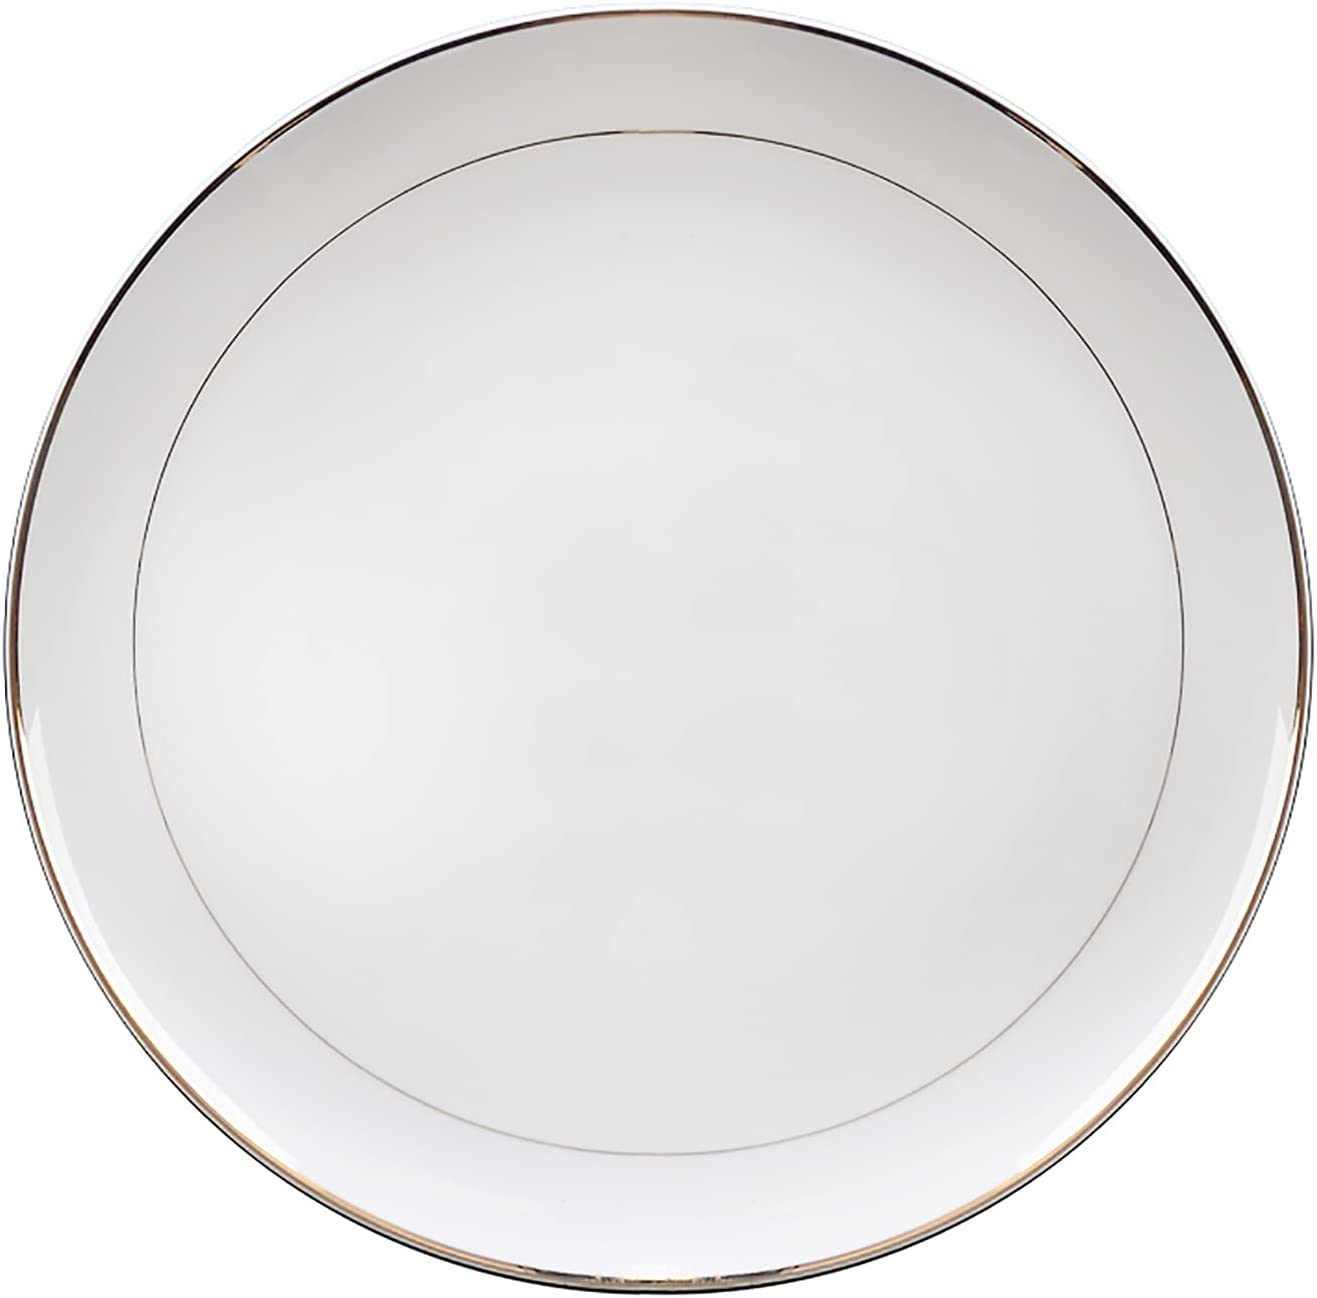 security ZCZZ Ceramic Dinner Plate 4 Piece 10 Reservation Set Cutlery-Microwave Inch